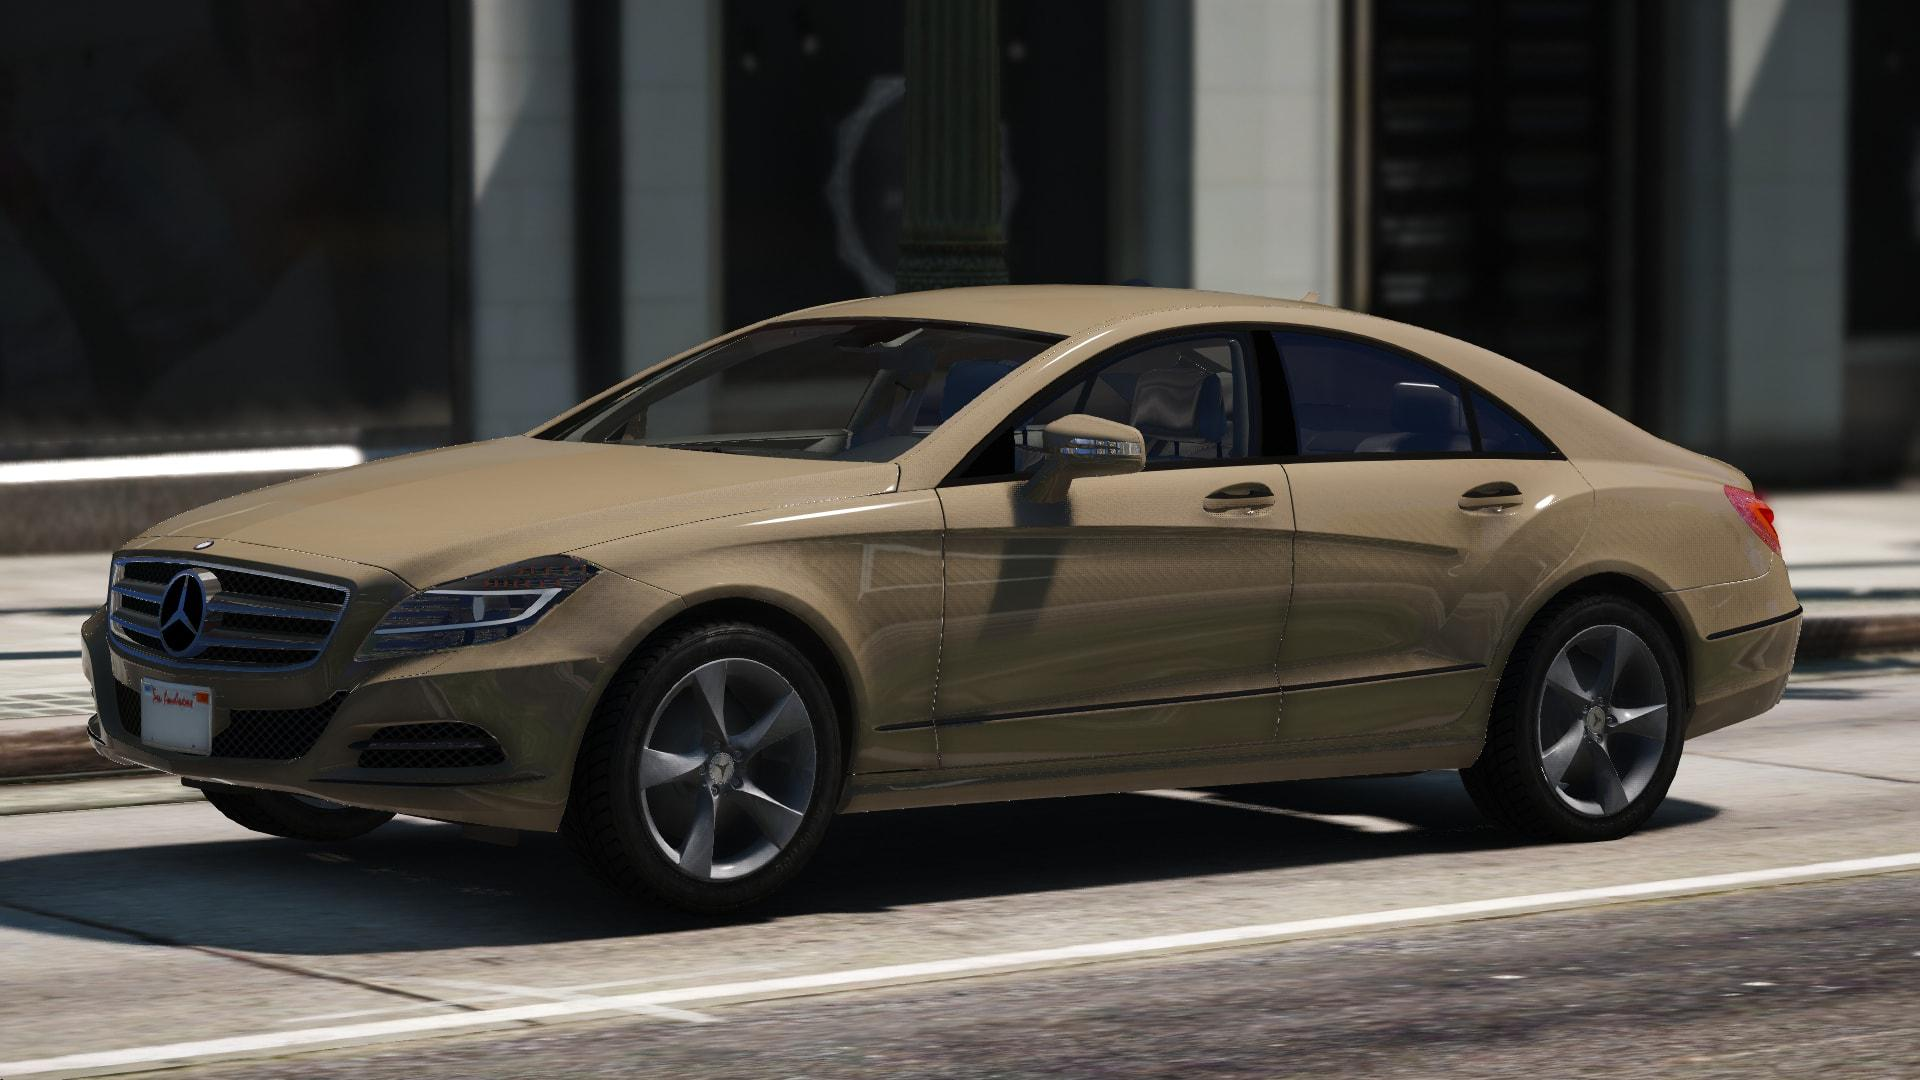 Mercedes benz cls 2012 unlocked gta5 for Mercedes benz gta